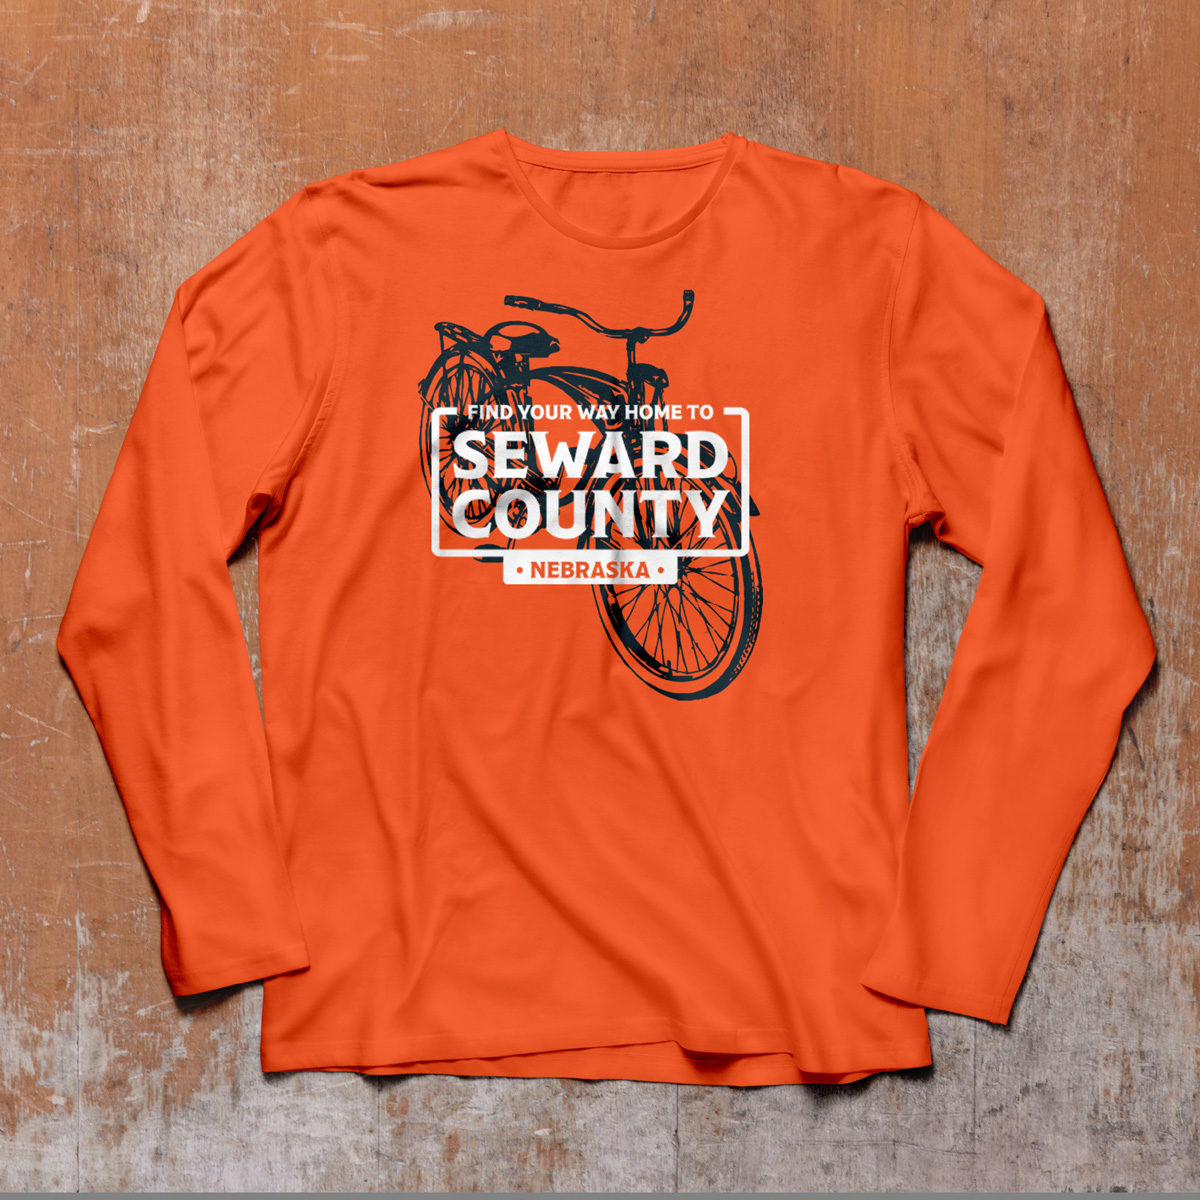 Seward County Shirt Design